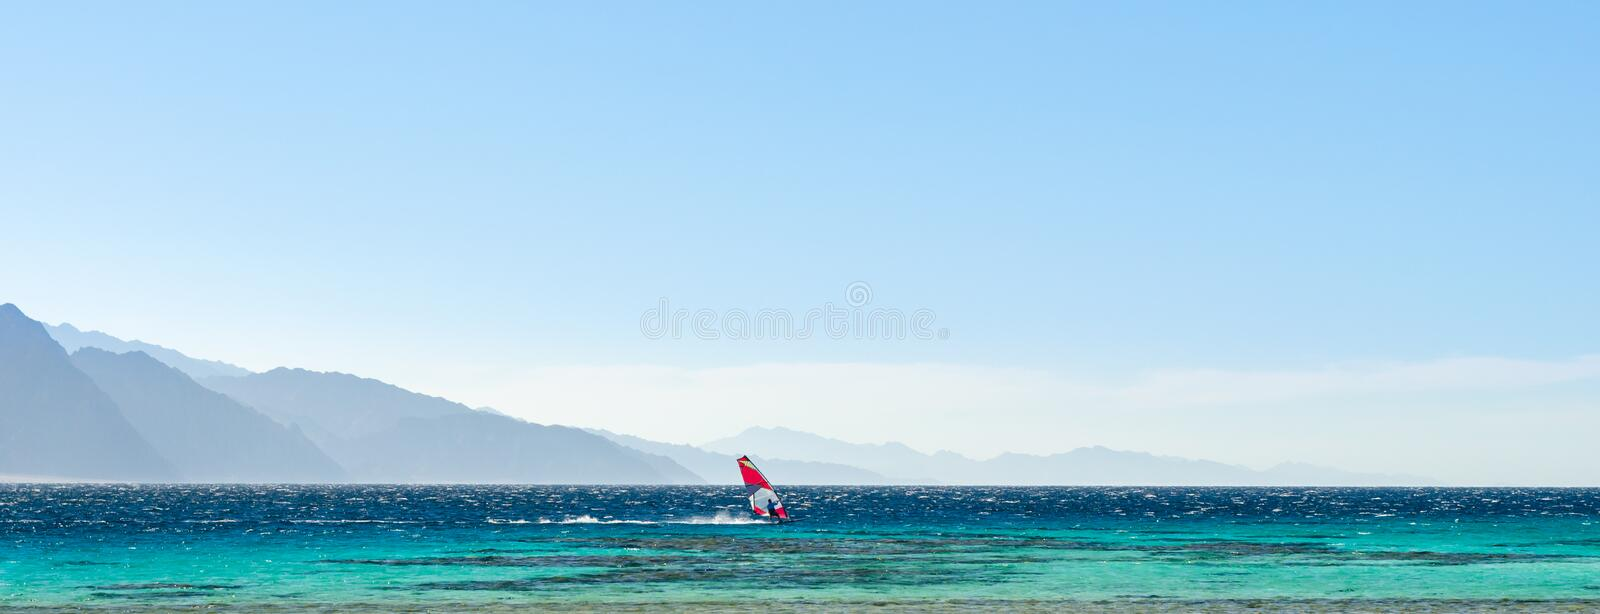 Surfer rides in the Red Sea against the backdrop of high rocky mountains and a blue sky with clouds in Egypt Dahab royalty free stock photos